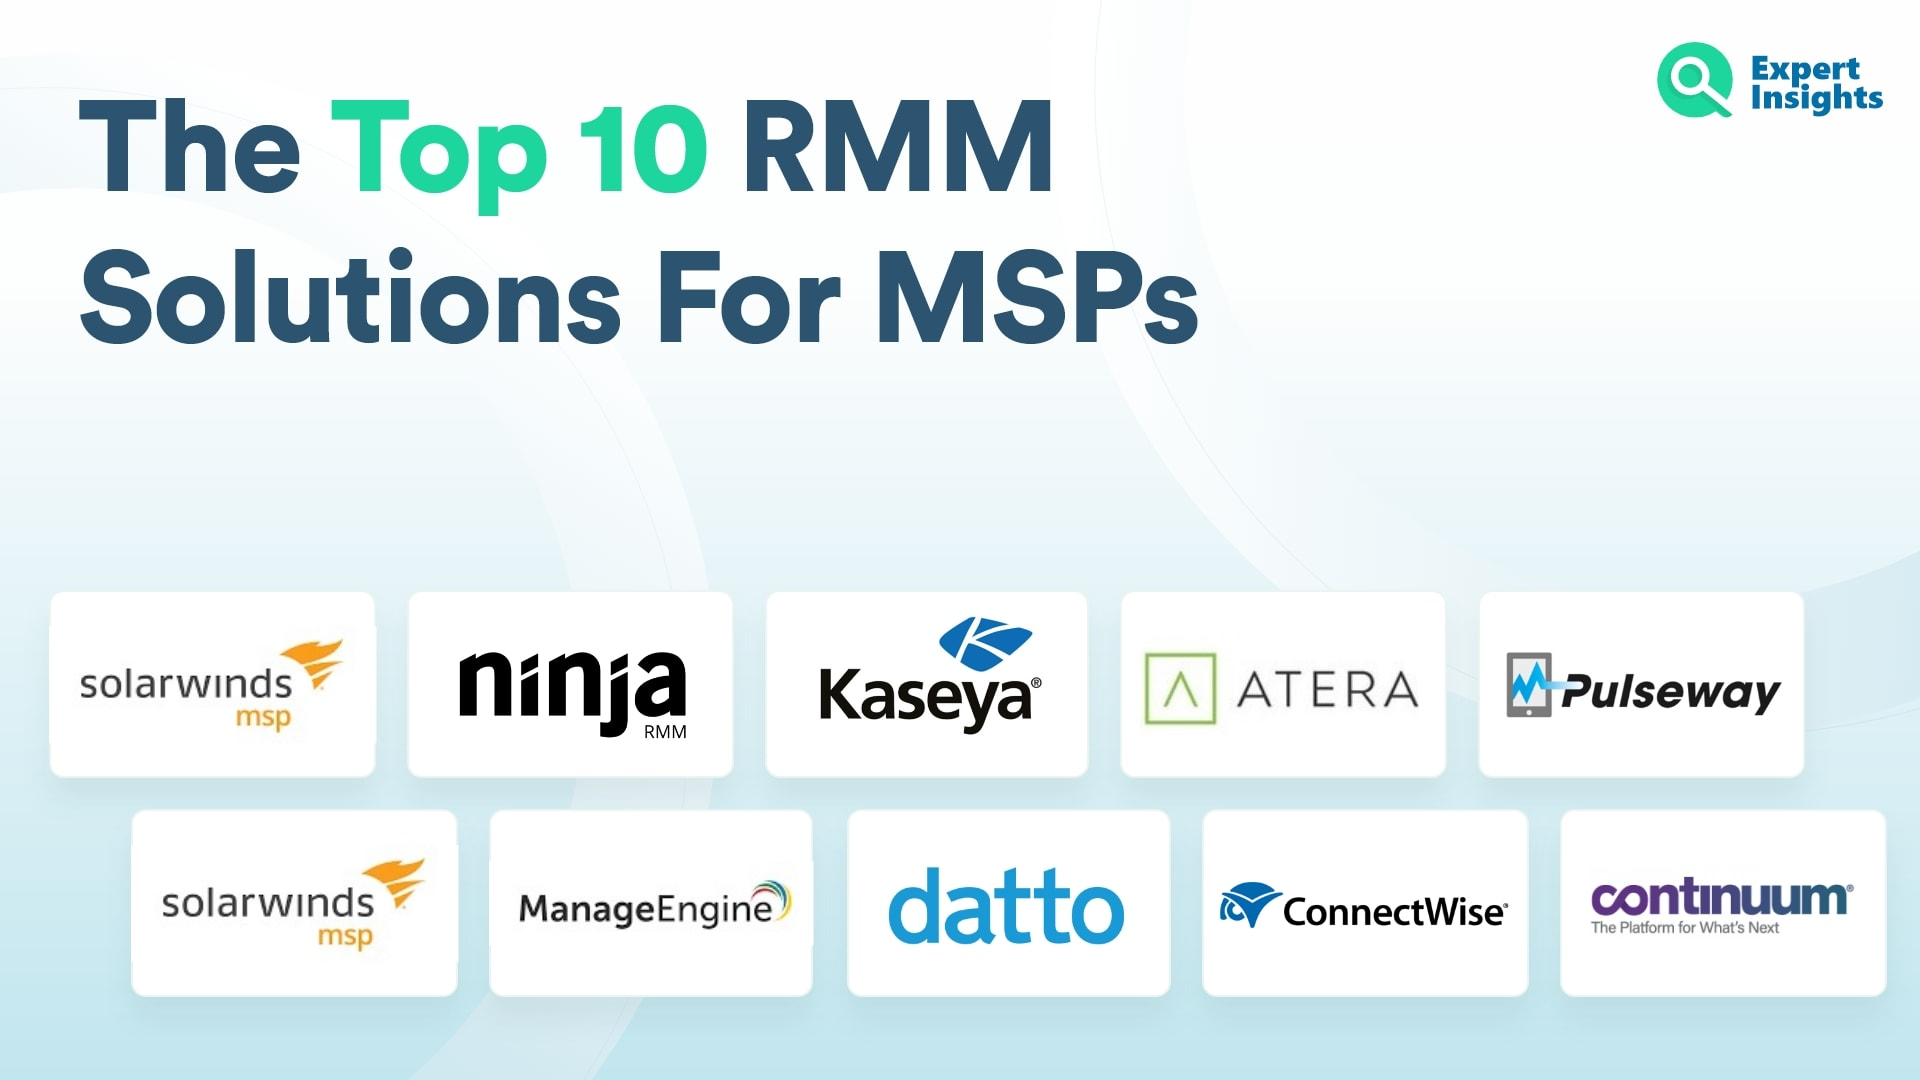 Top 10 RMM Solutions For MSPs - Expert Insights